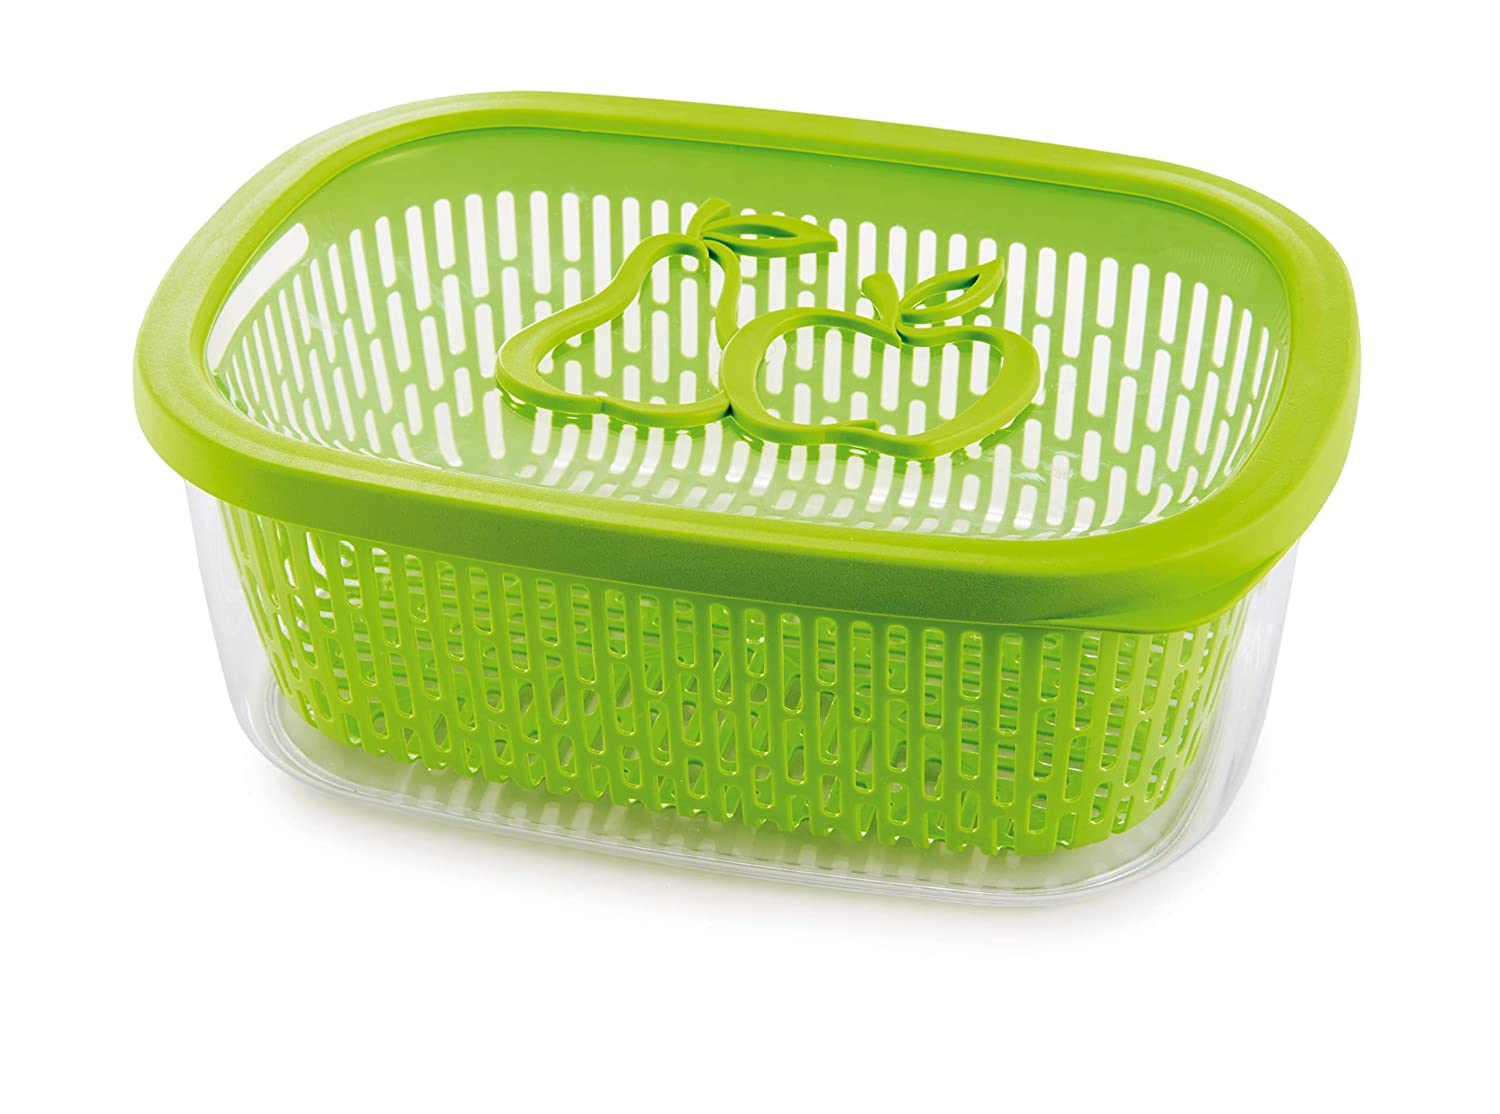 Snips Aroma Storage Fruit Keeper, Green